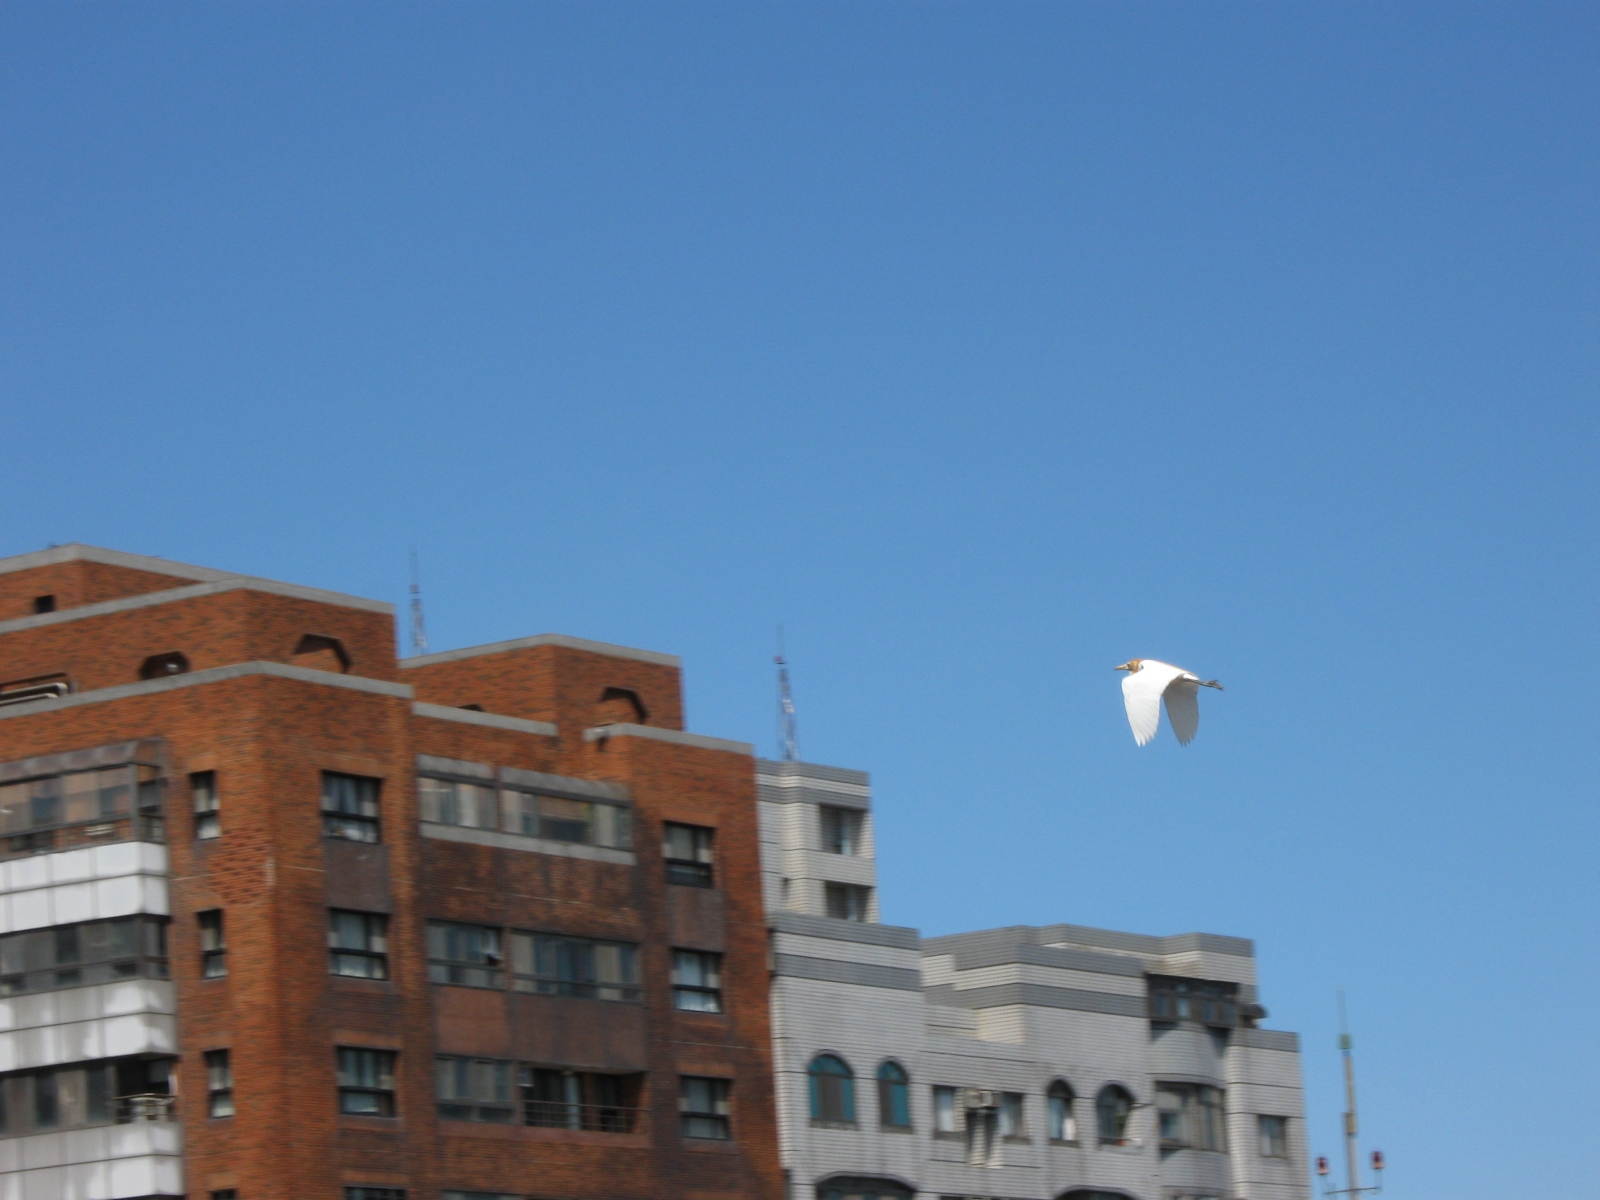 Flying over roof tops photo